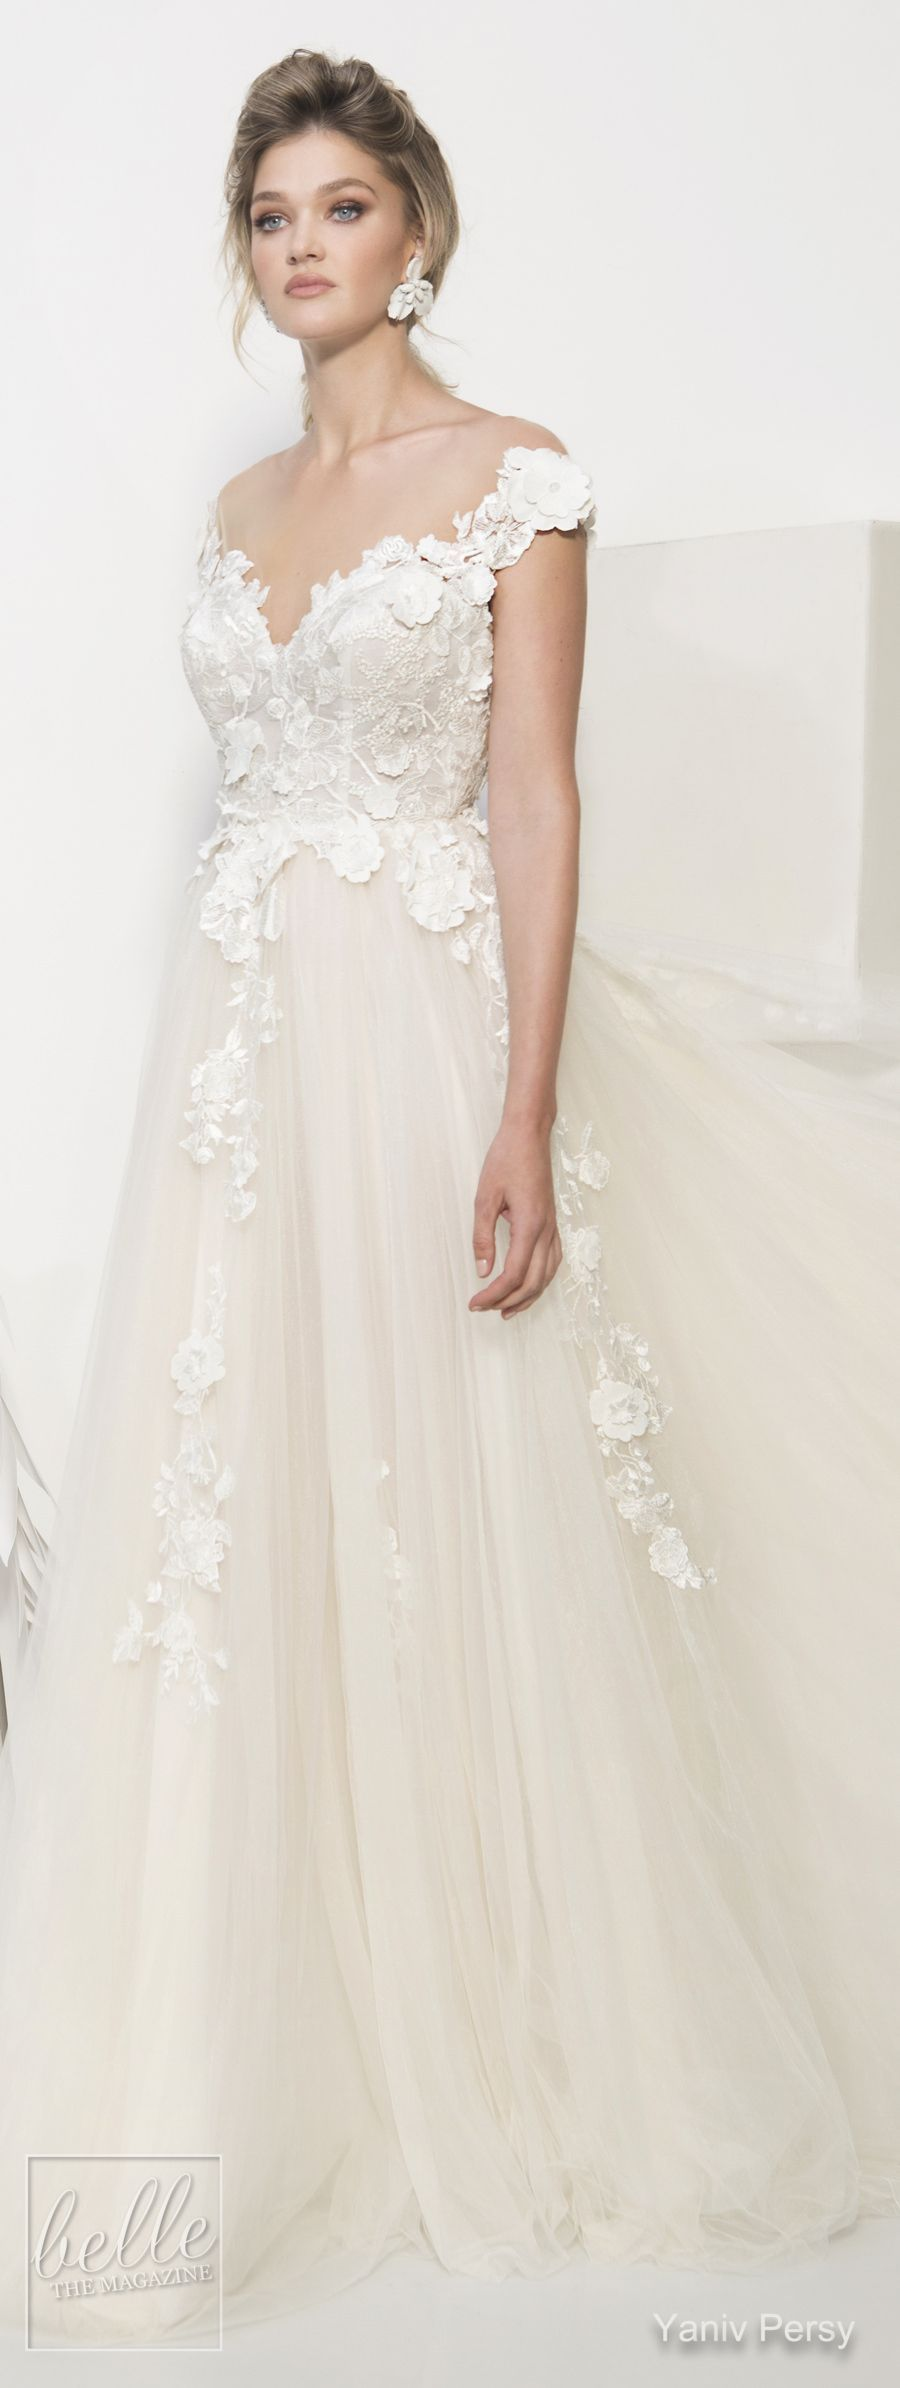 Wedding decorations using tulle october 2018 Yaniv Persy Wedding Dresses Spring   Couture Bridal Collection